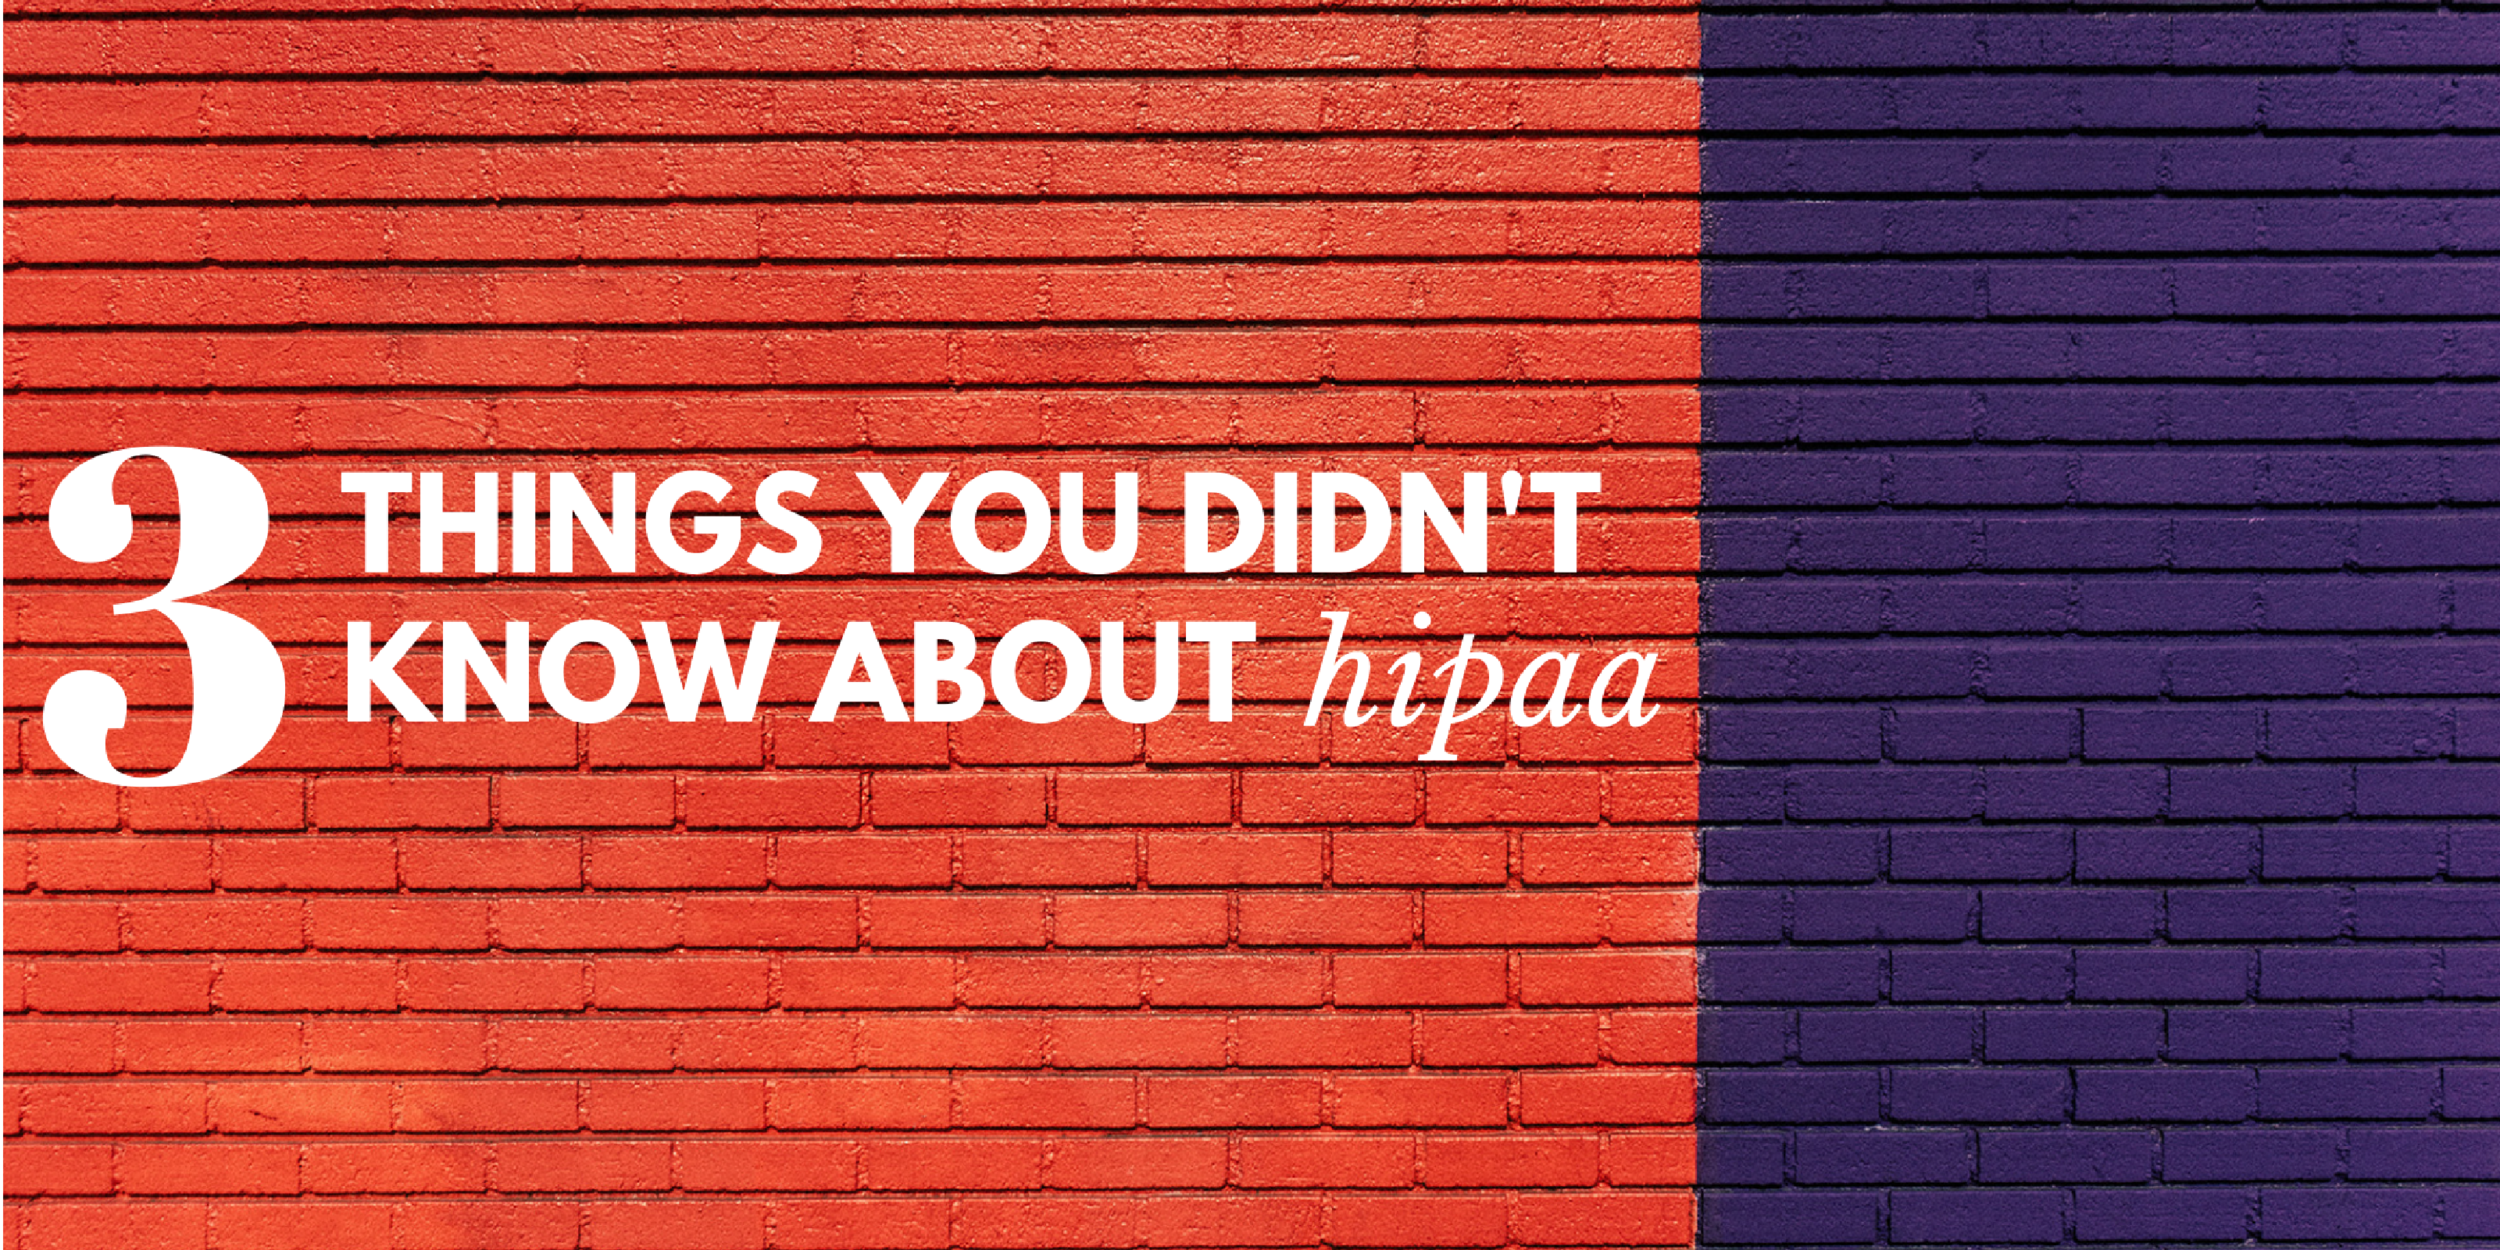 three things you didn't know about HIPAA